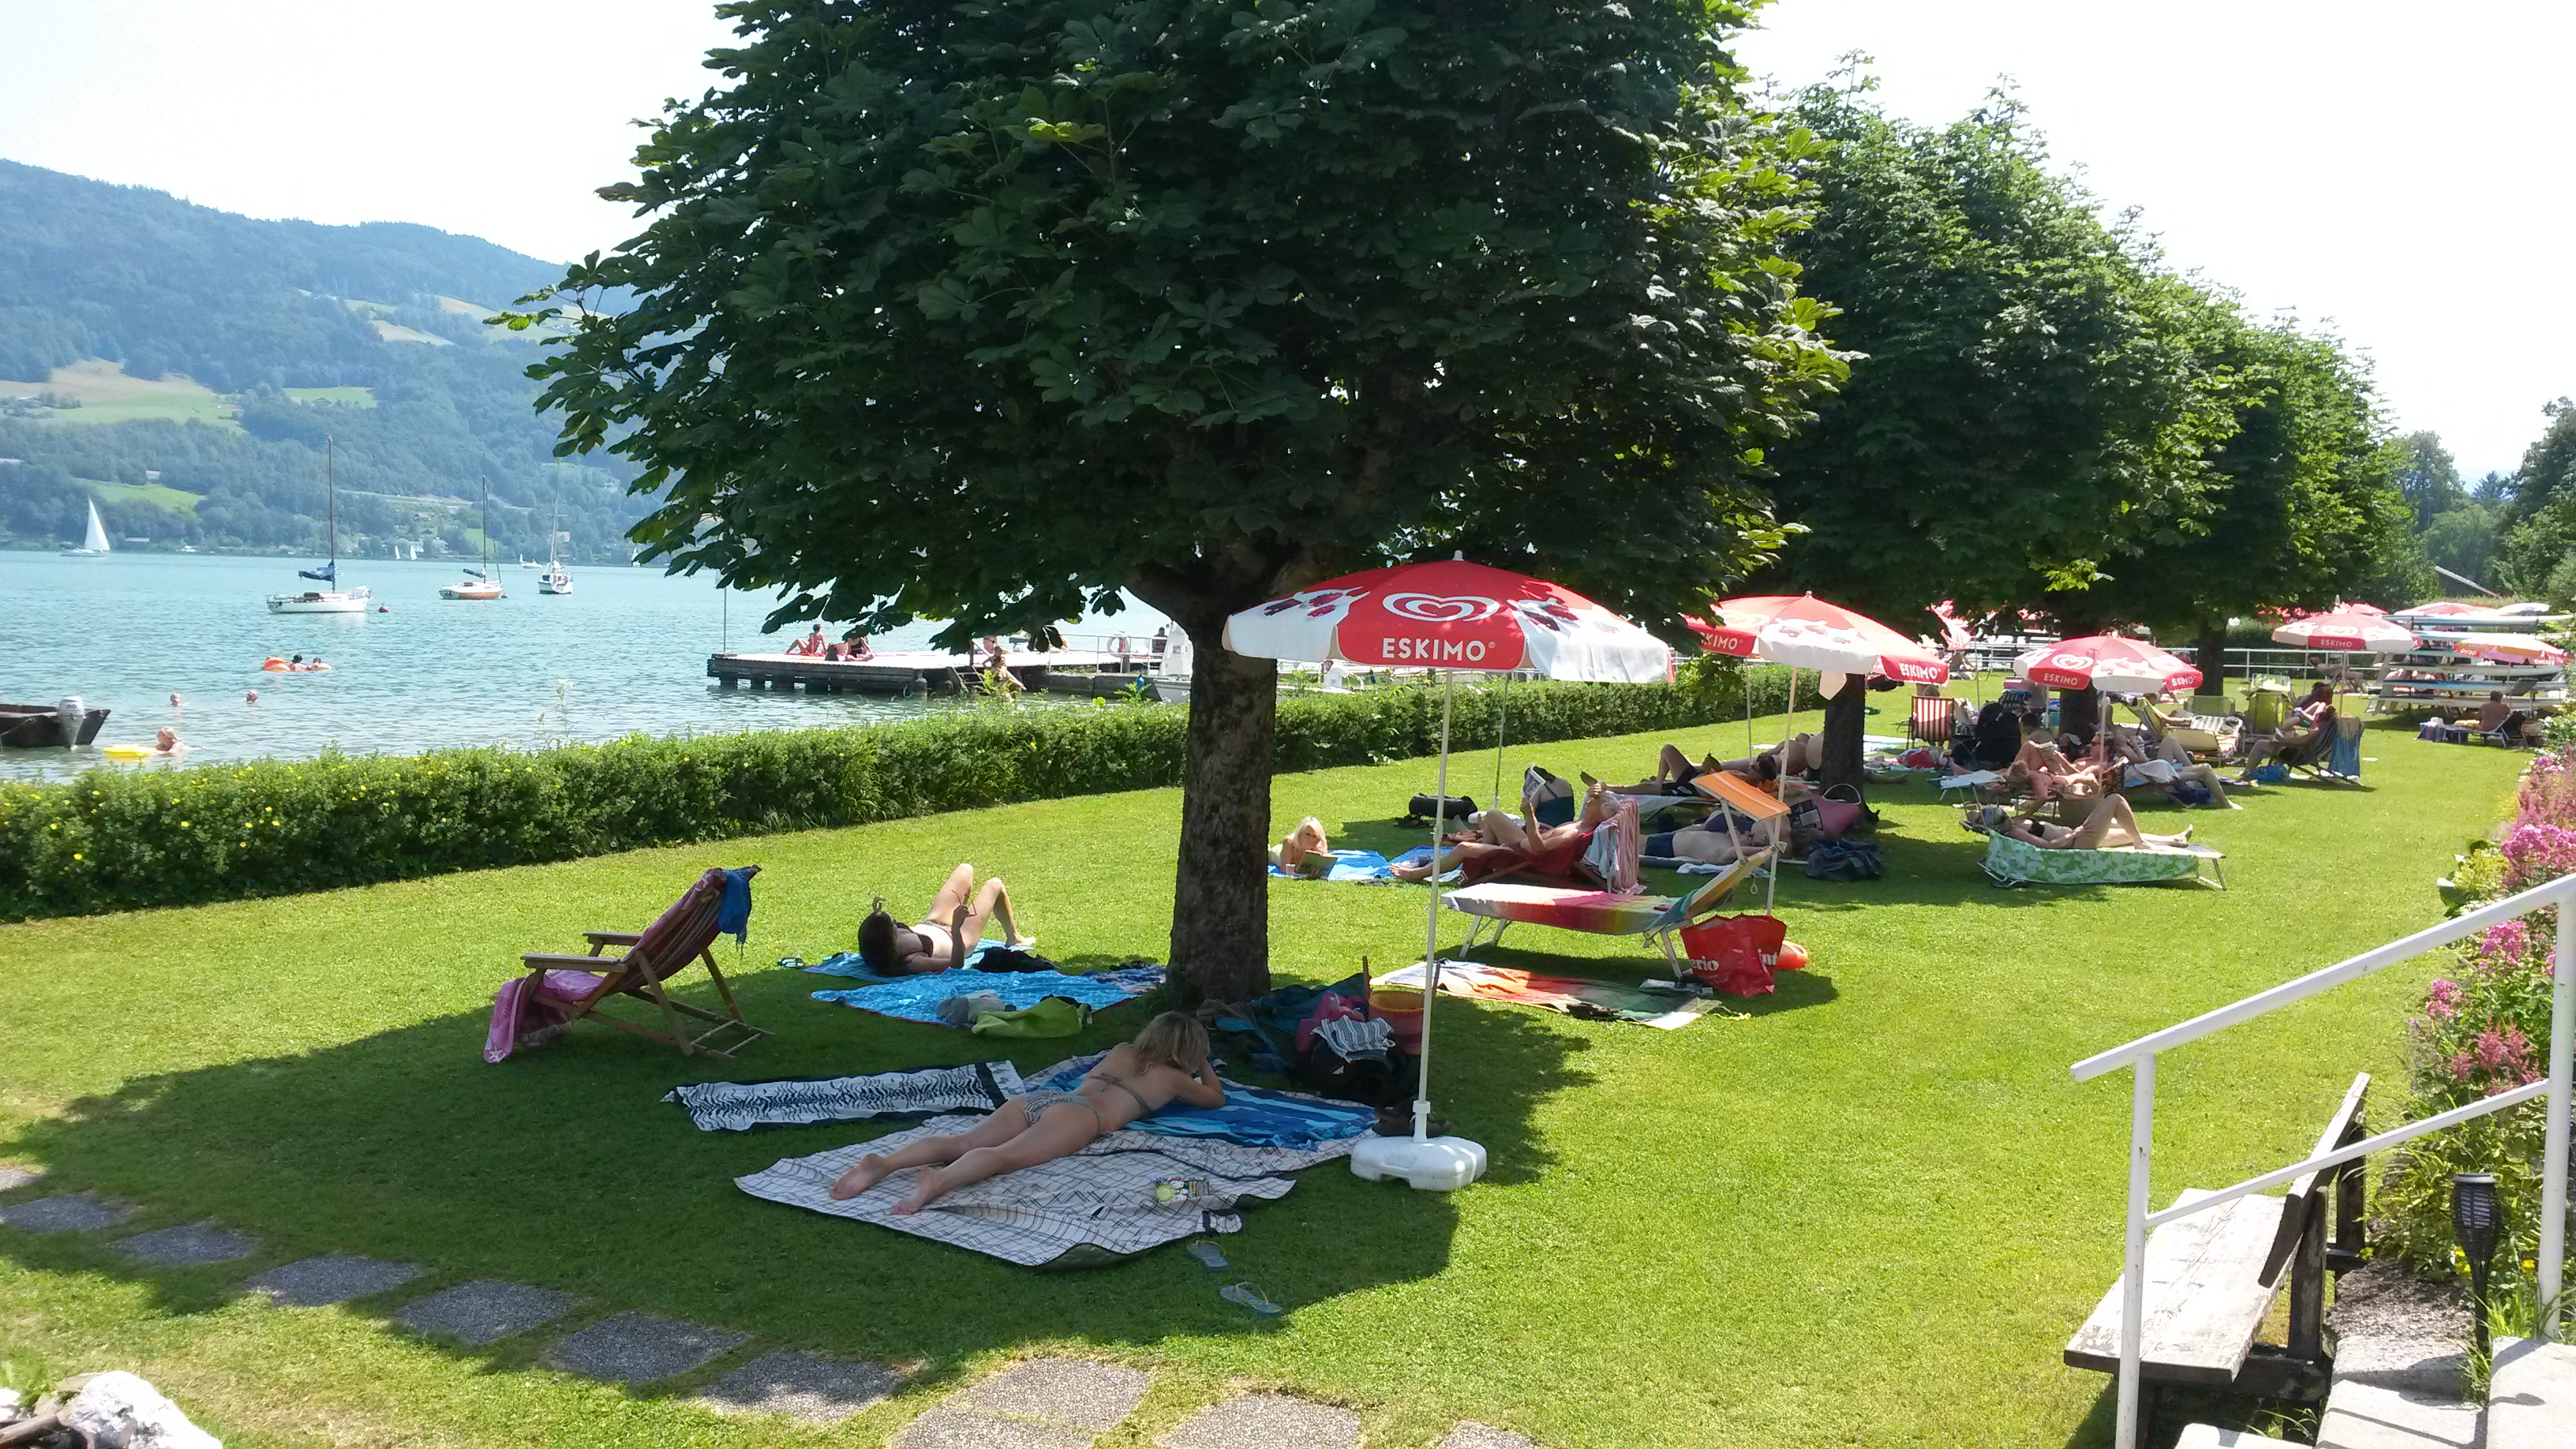 Badeplatz am Mondsee in Schwarzindien